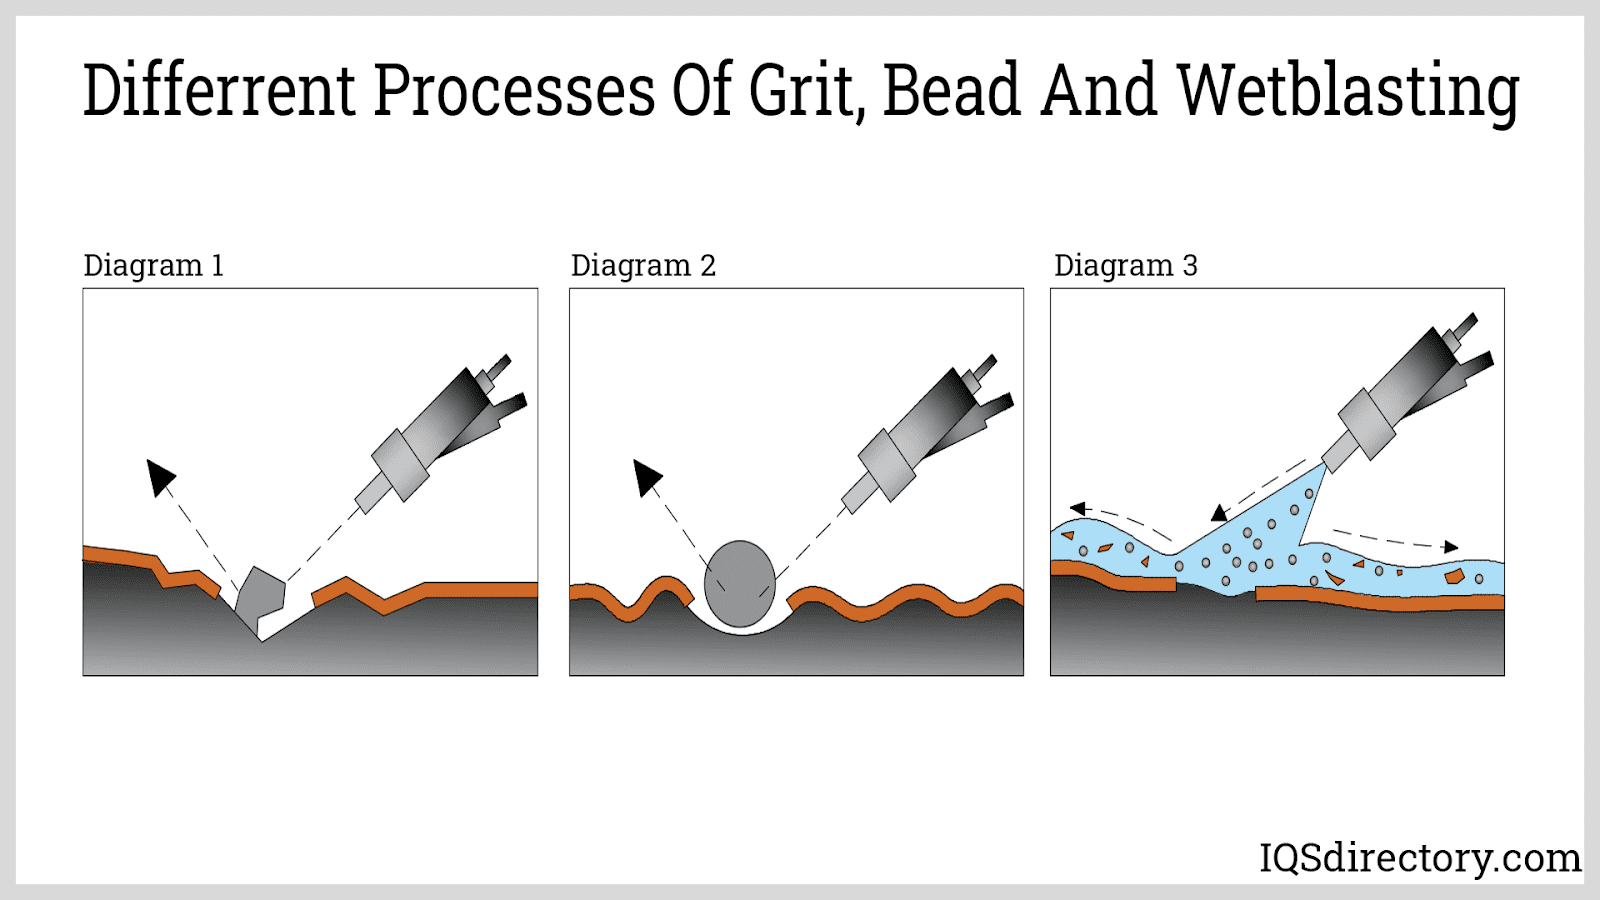 Different Processes of Grit, Bead and Wetblasting